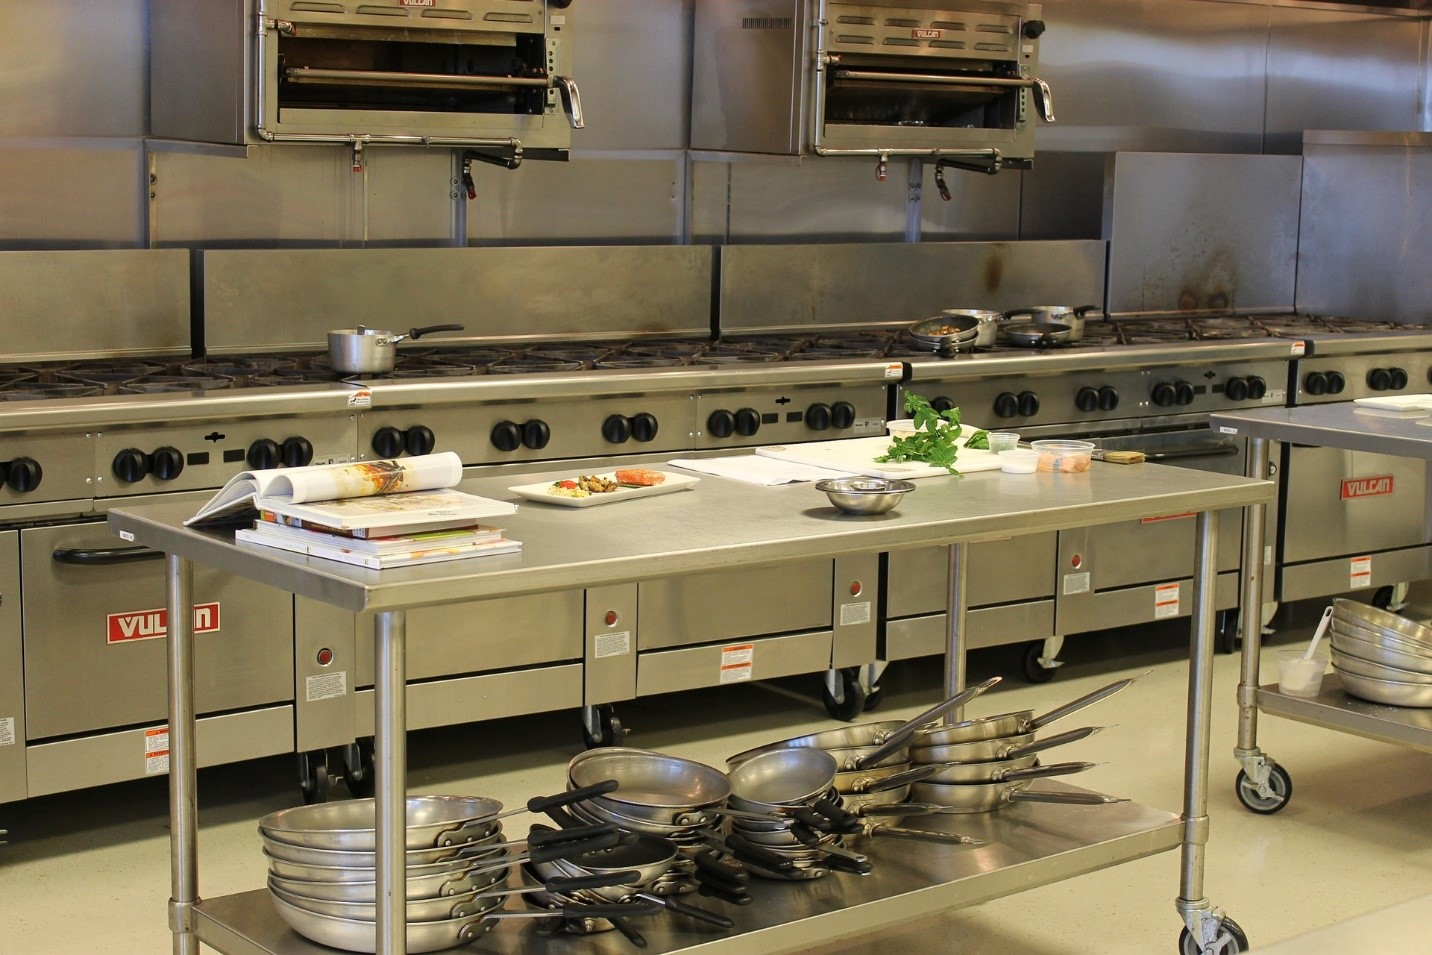 A large commercial kitchen with stainless steel appliances